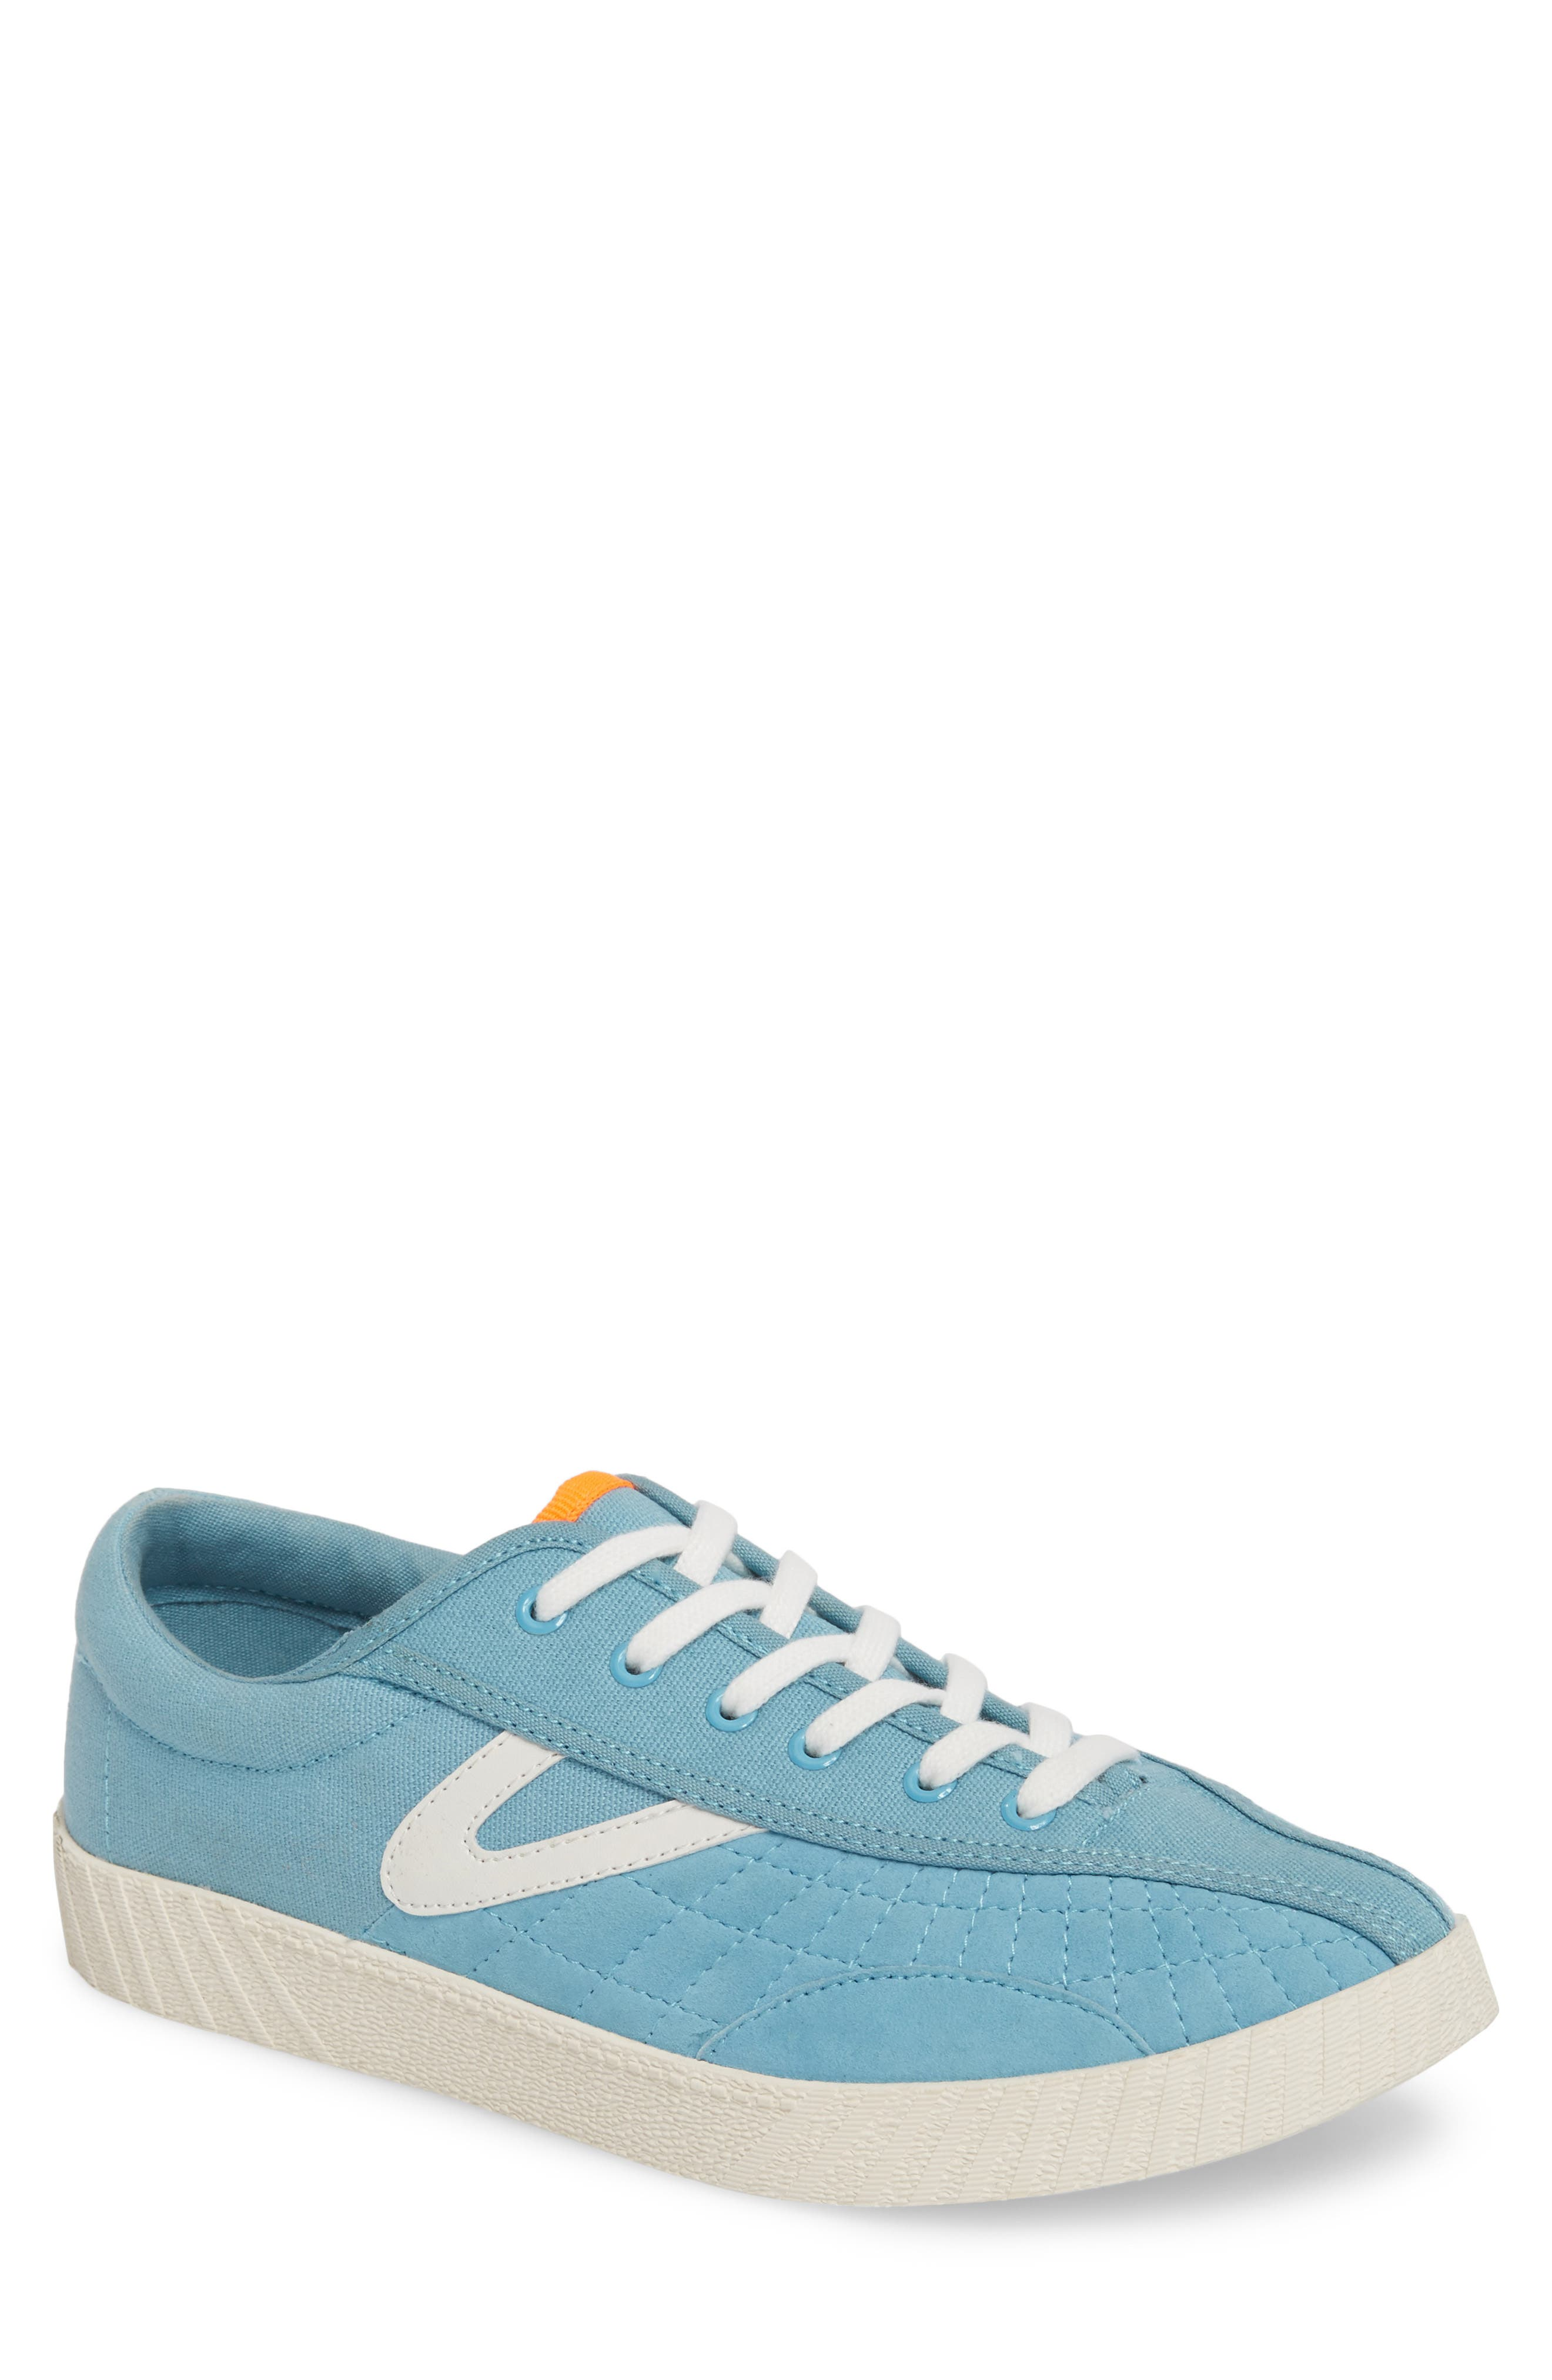 Andre 3000 Nylite Low Top Sneaker,                         Main,                         color, BABY BLUE CANVAS